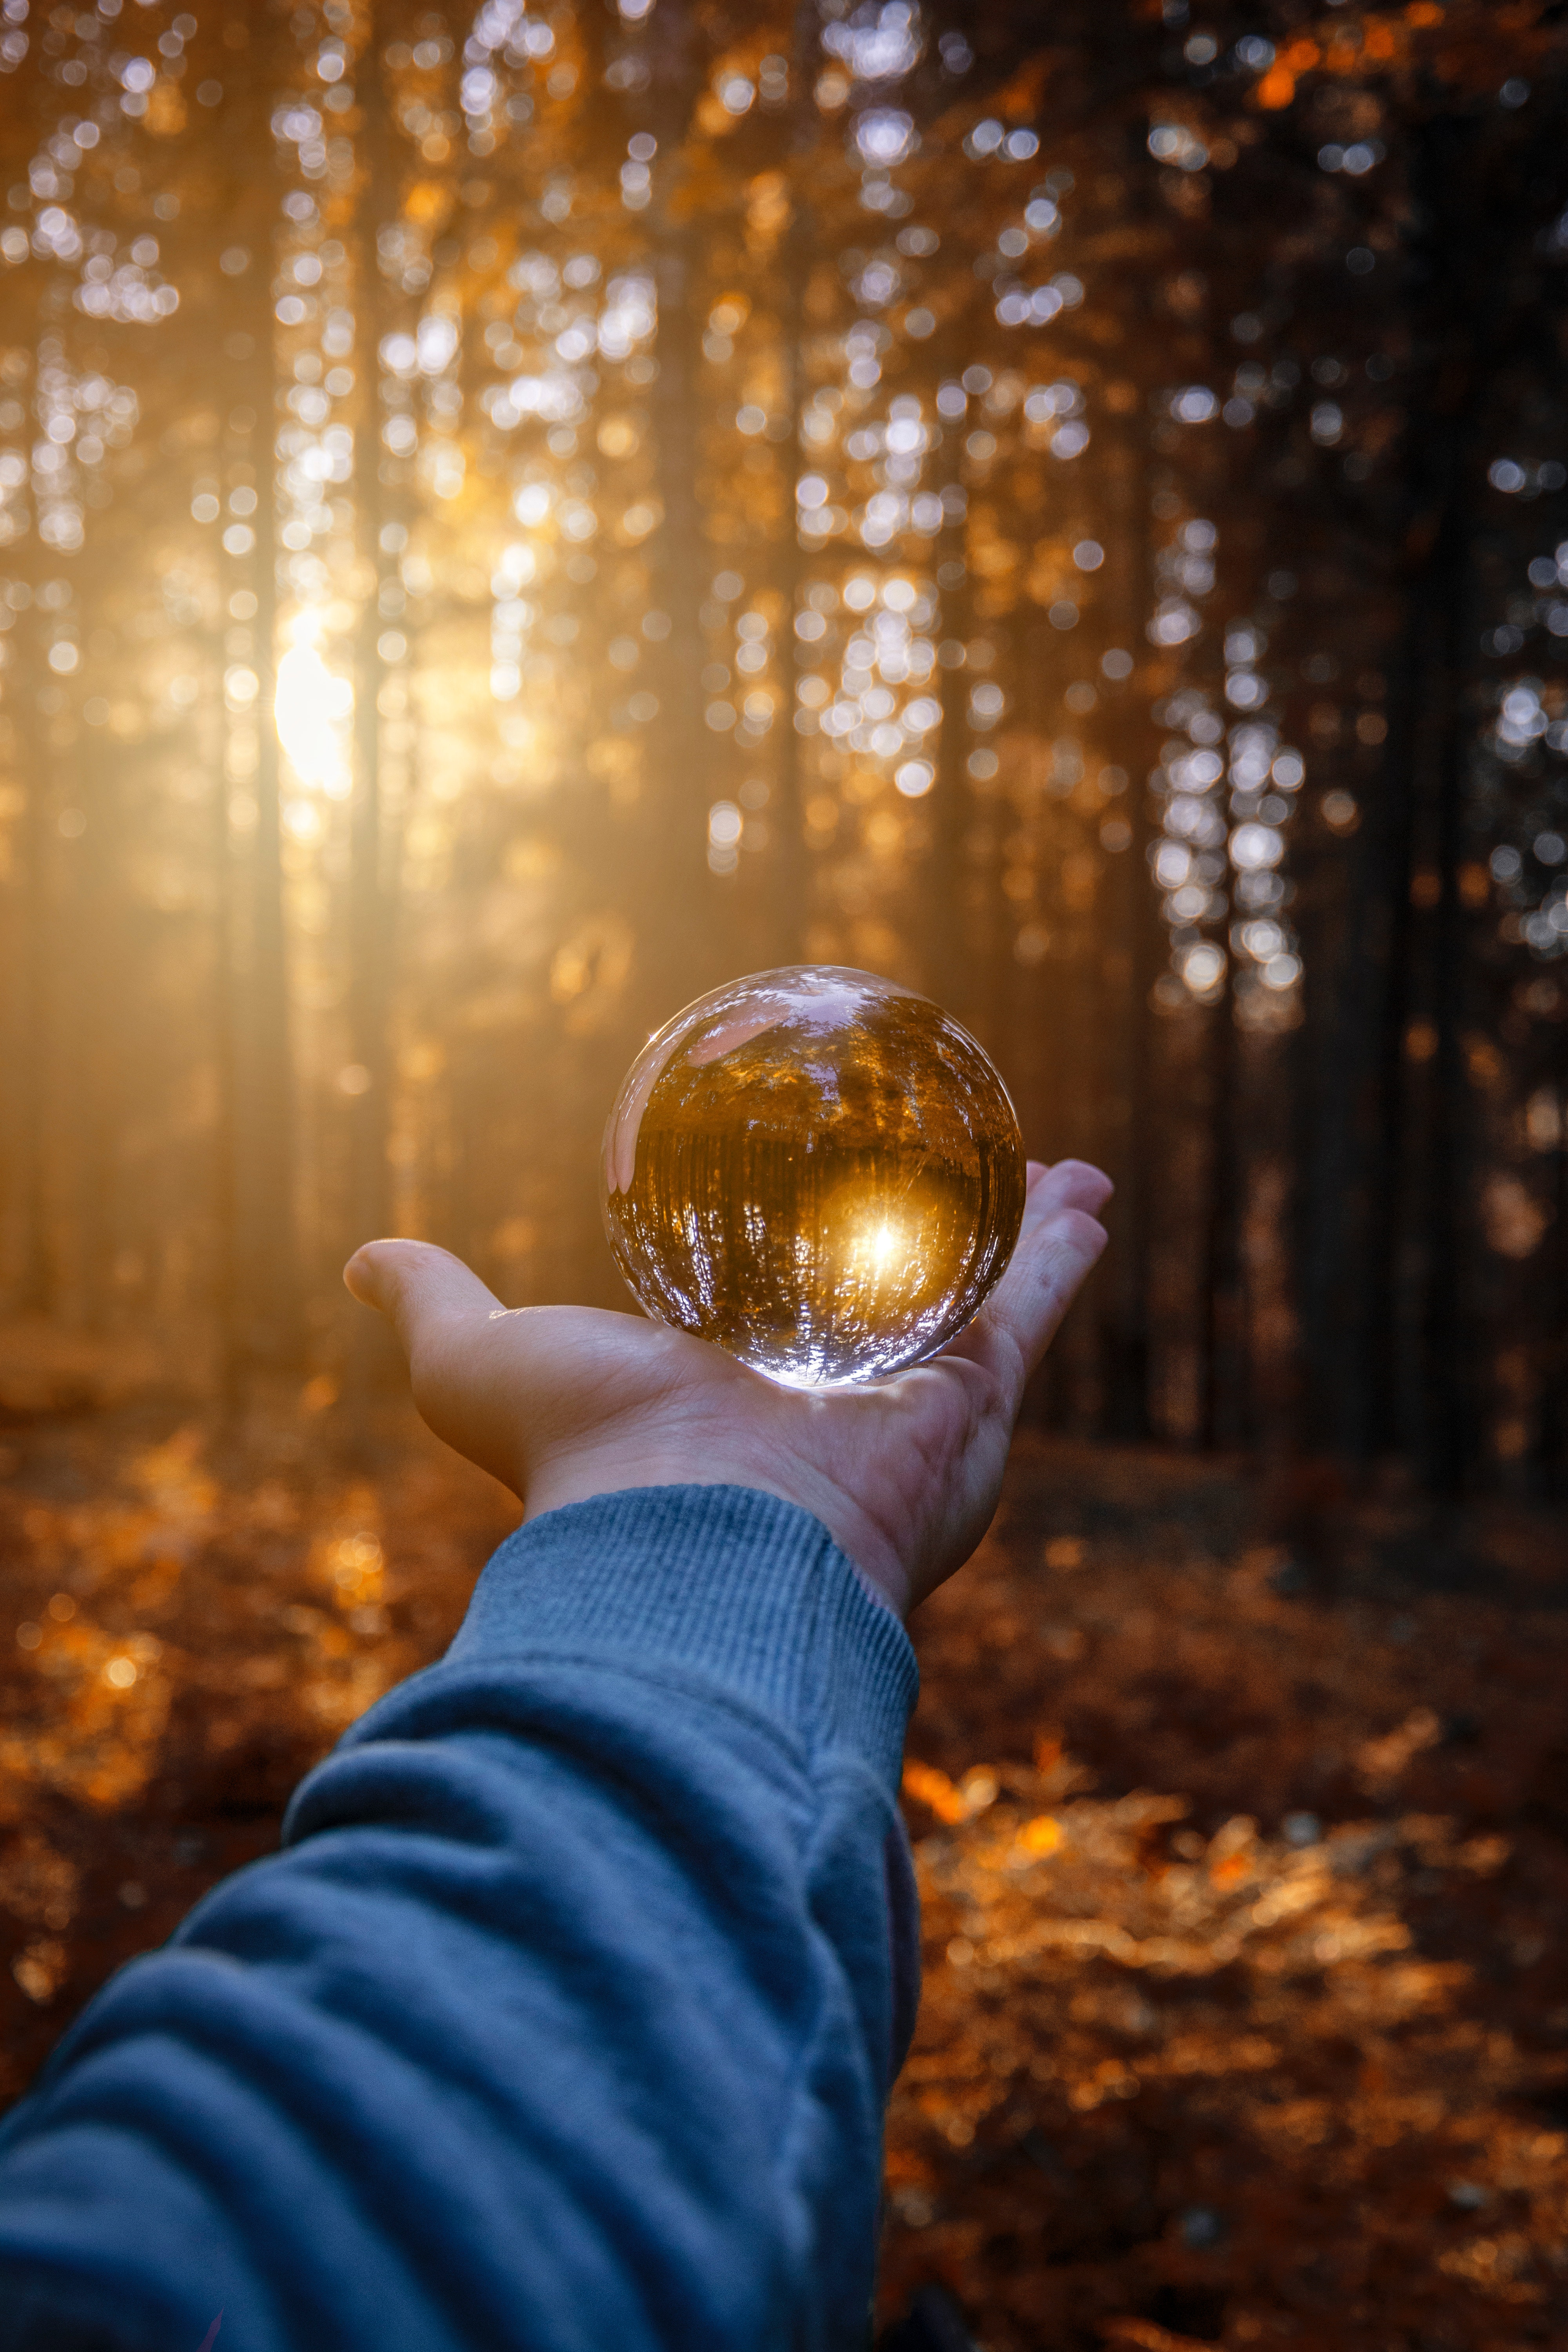 80906 download wallpaper Autumn, Reflection, Hand, Miscellanea, Miscellaneous, Glass, Ball screensavers and pictures for free